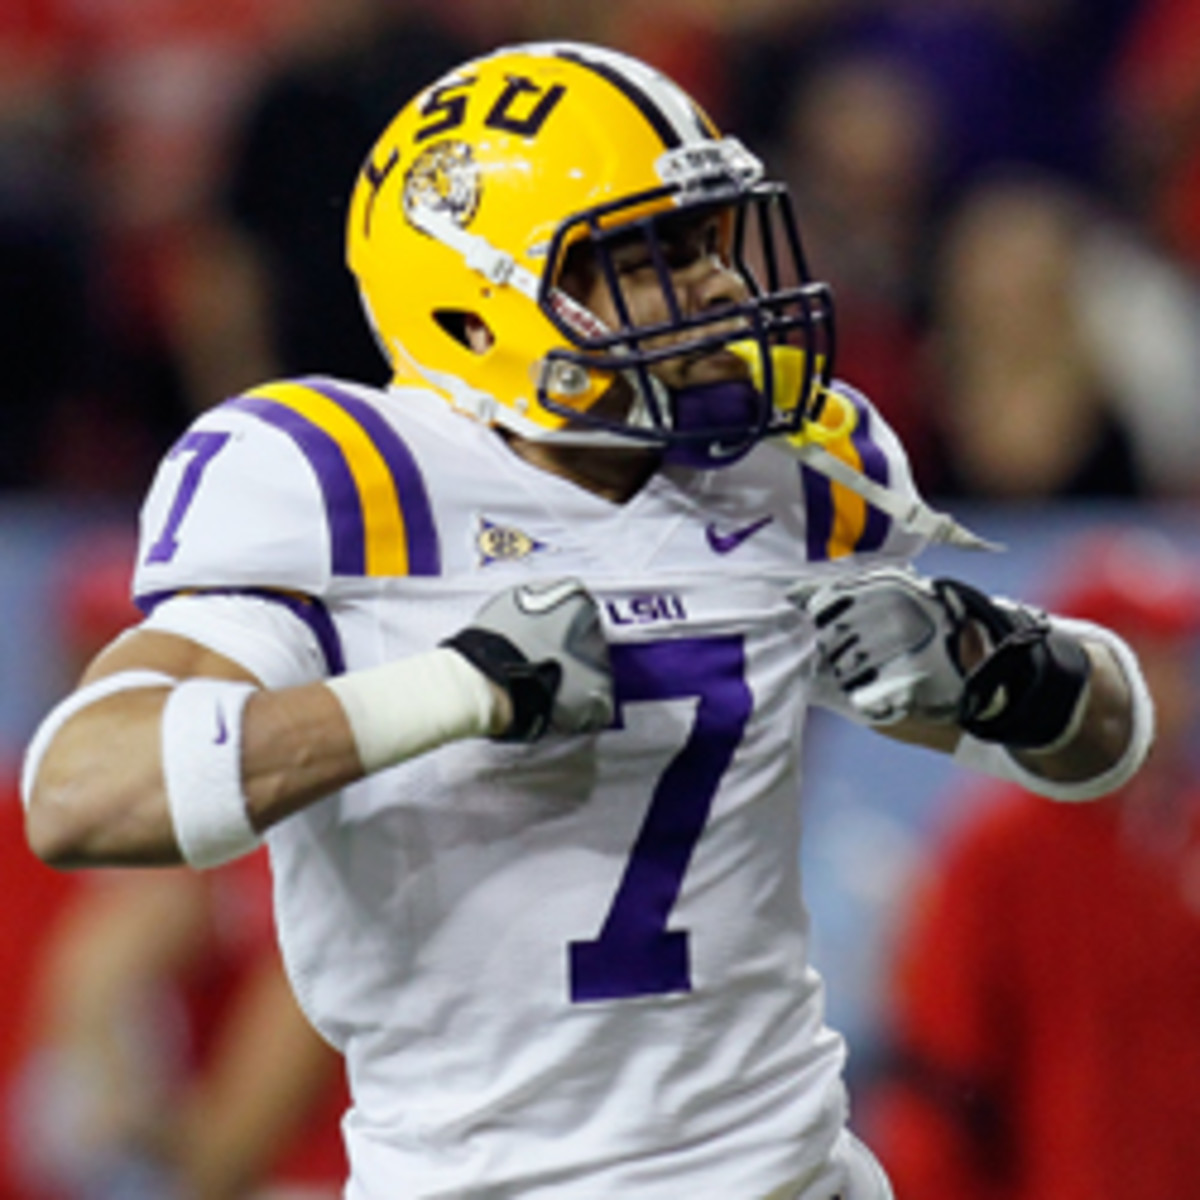 Ex-LSU cornerback Tyrann Mathieu reportedly told NFL teams that he failed more than 10 drug tests in college. (Kevin C. Cox/Getty Images)